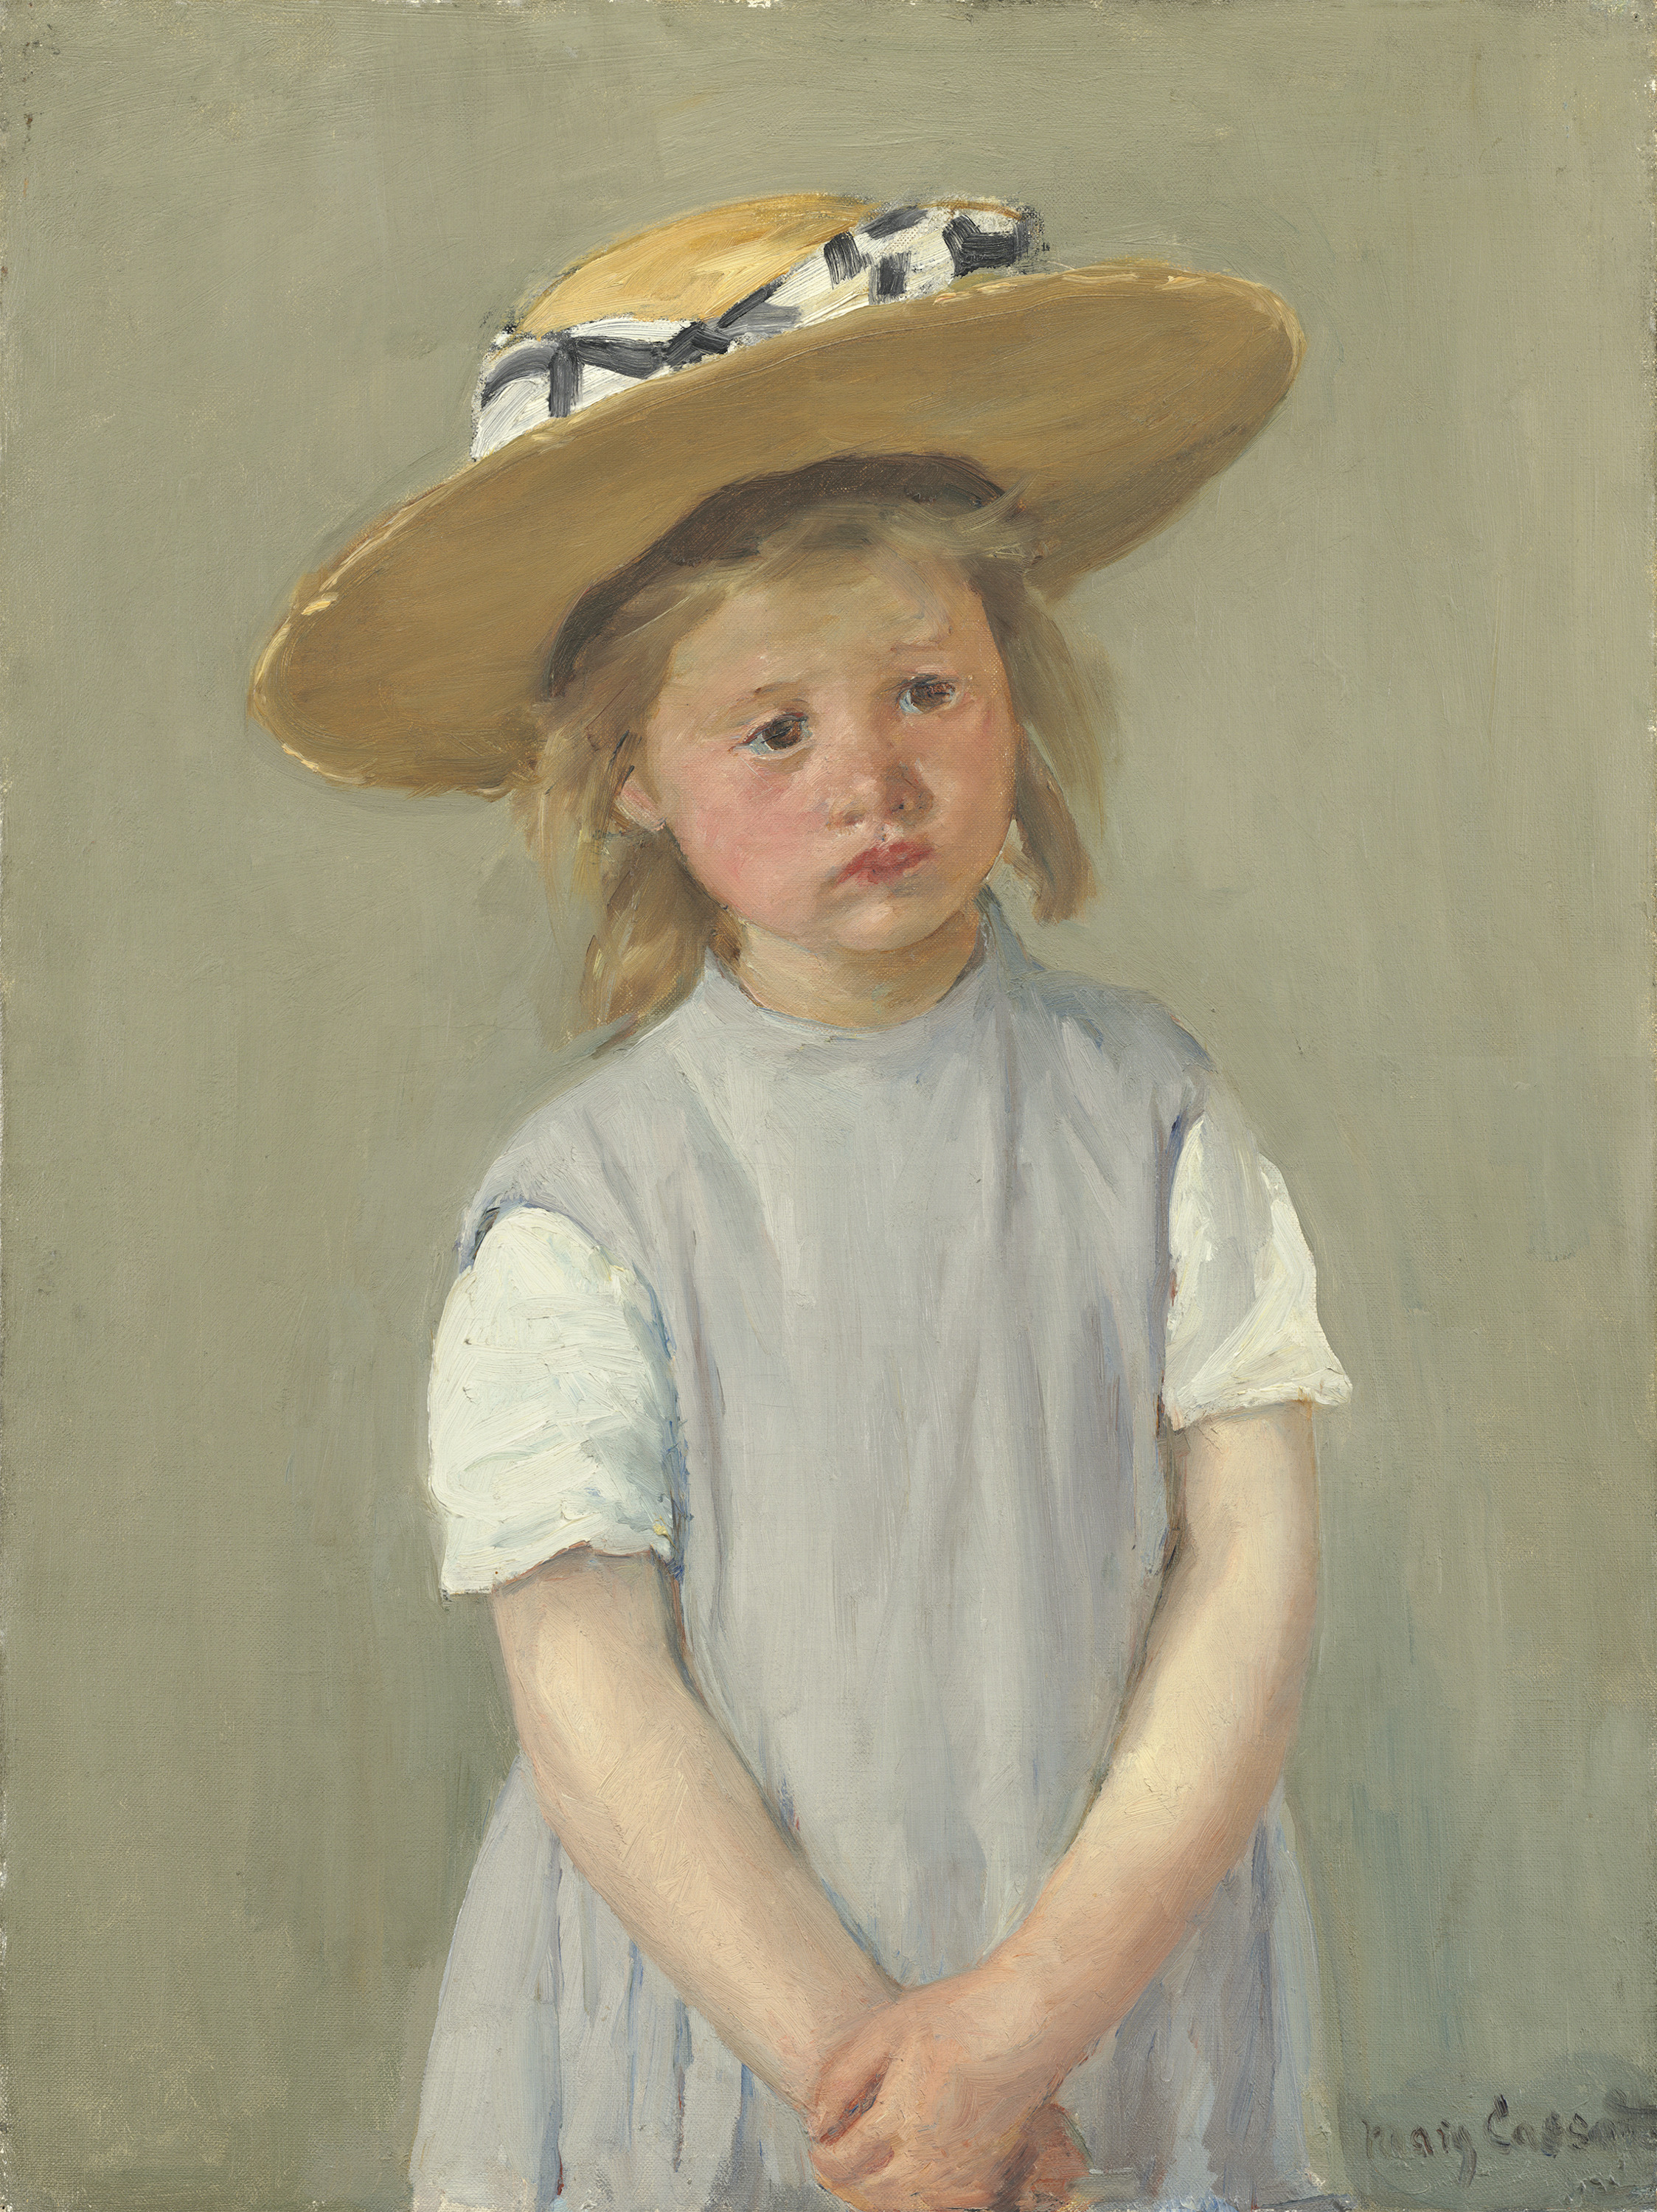 mary cassatt The only american artist to exhibit her work with the french impressionists, mary cassatt was first invited to show with the group by edgar degas in 1877.